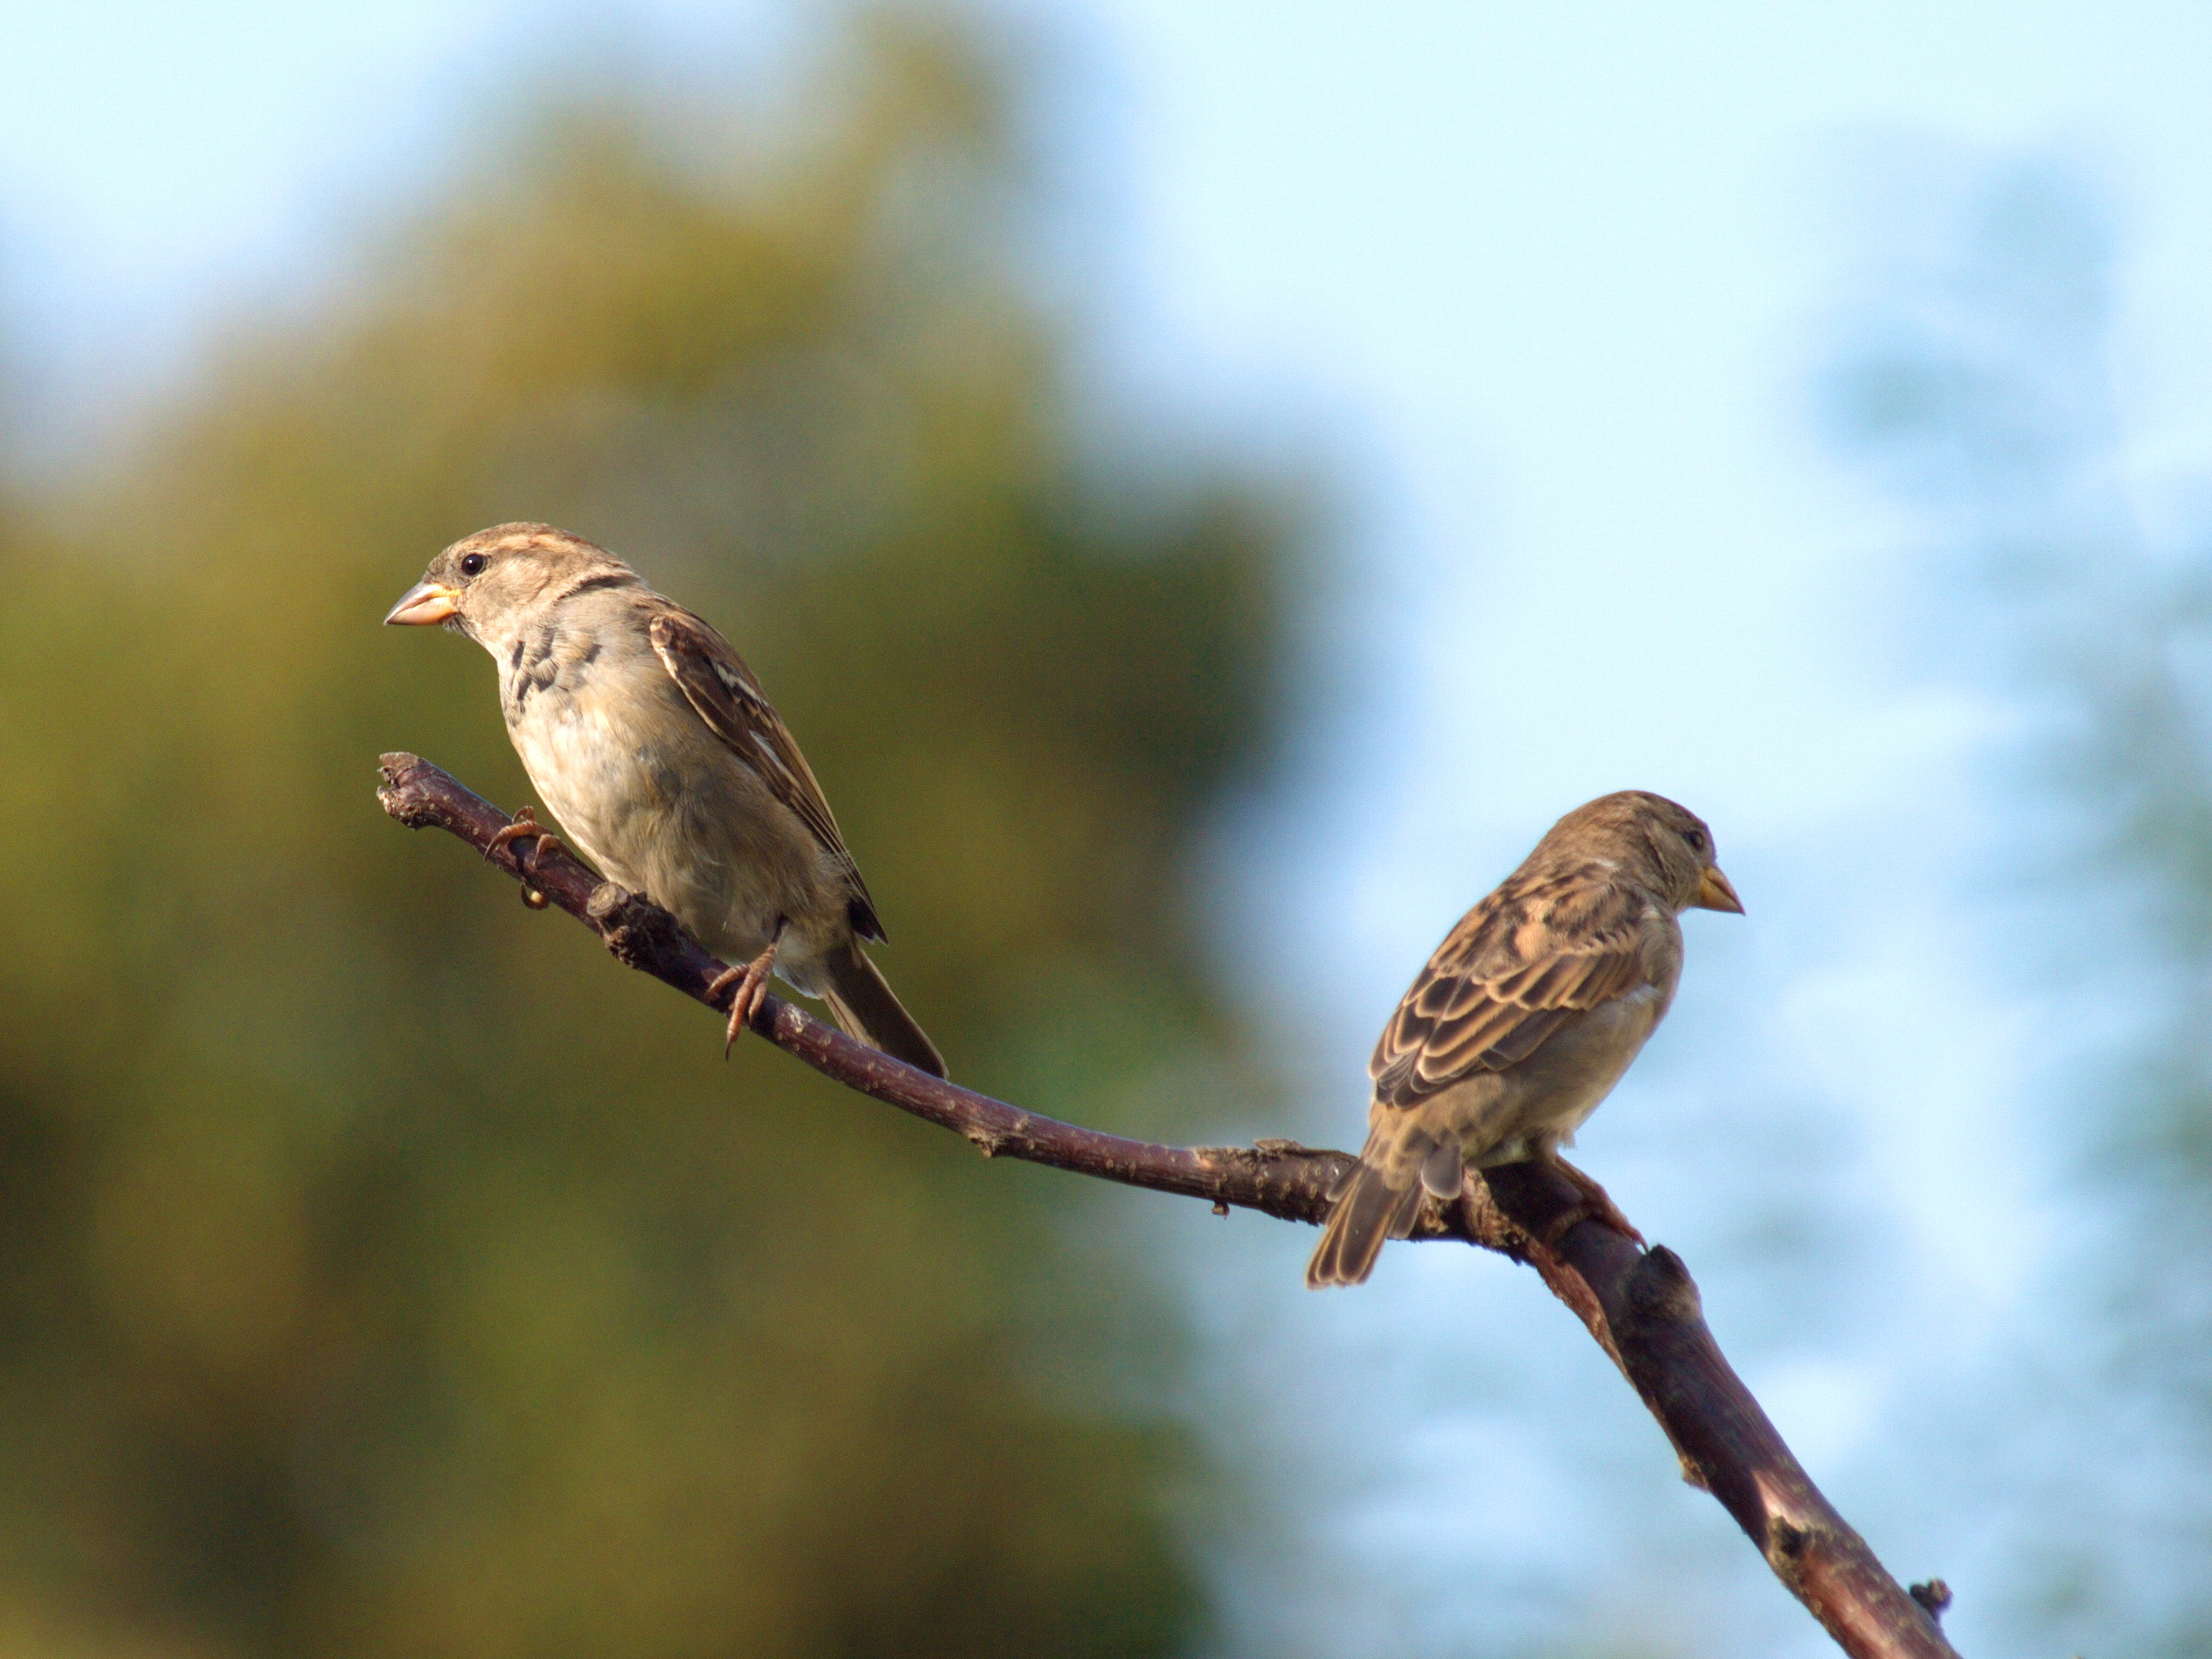 Two sparrows after an argument